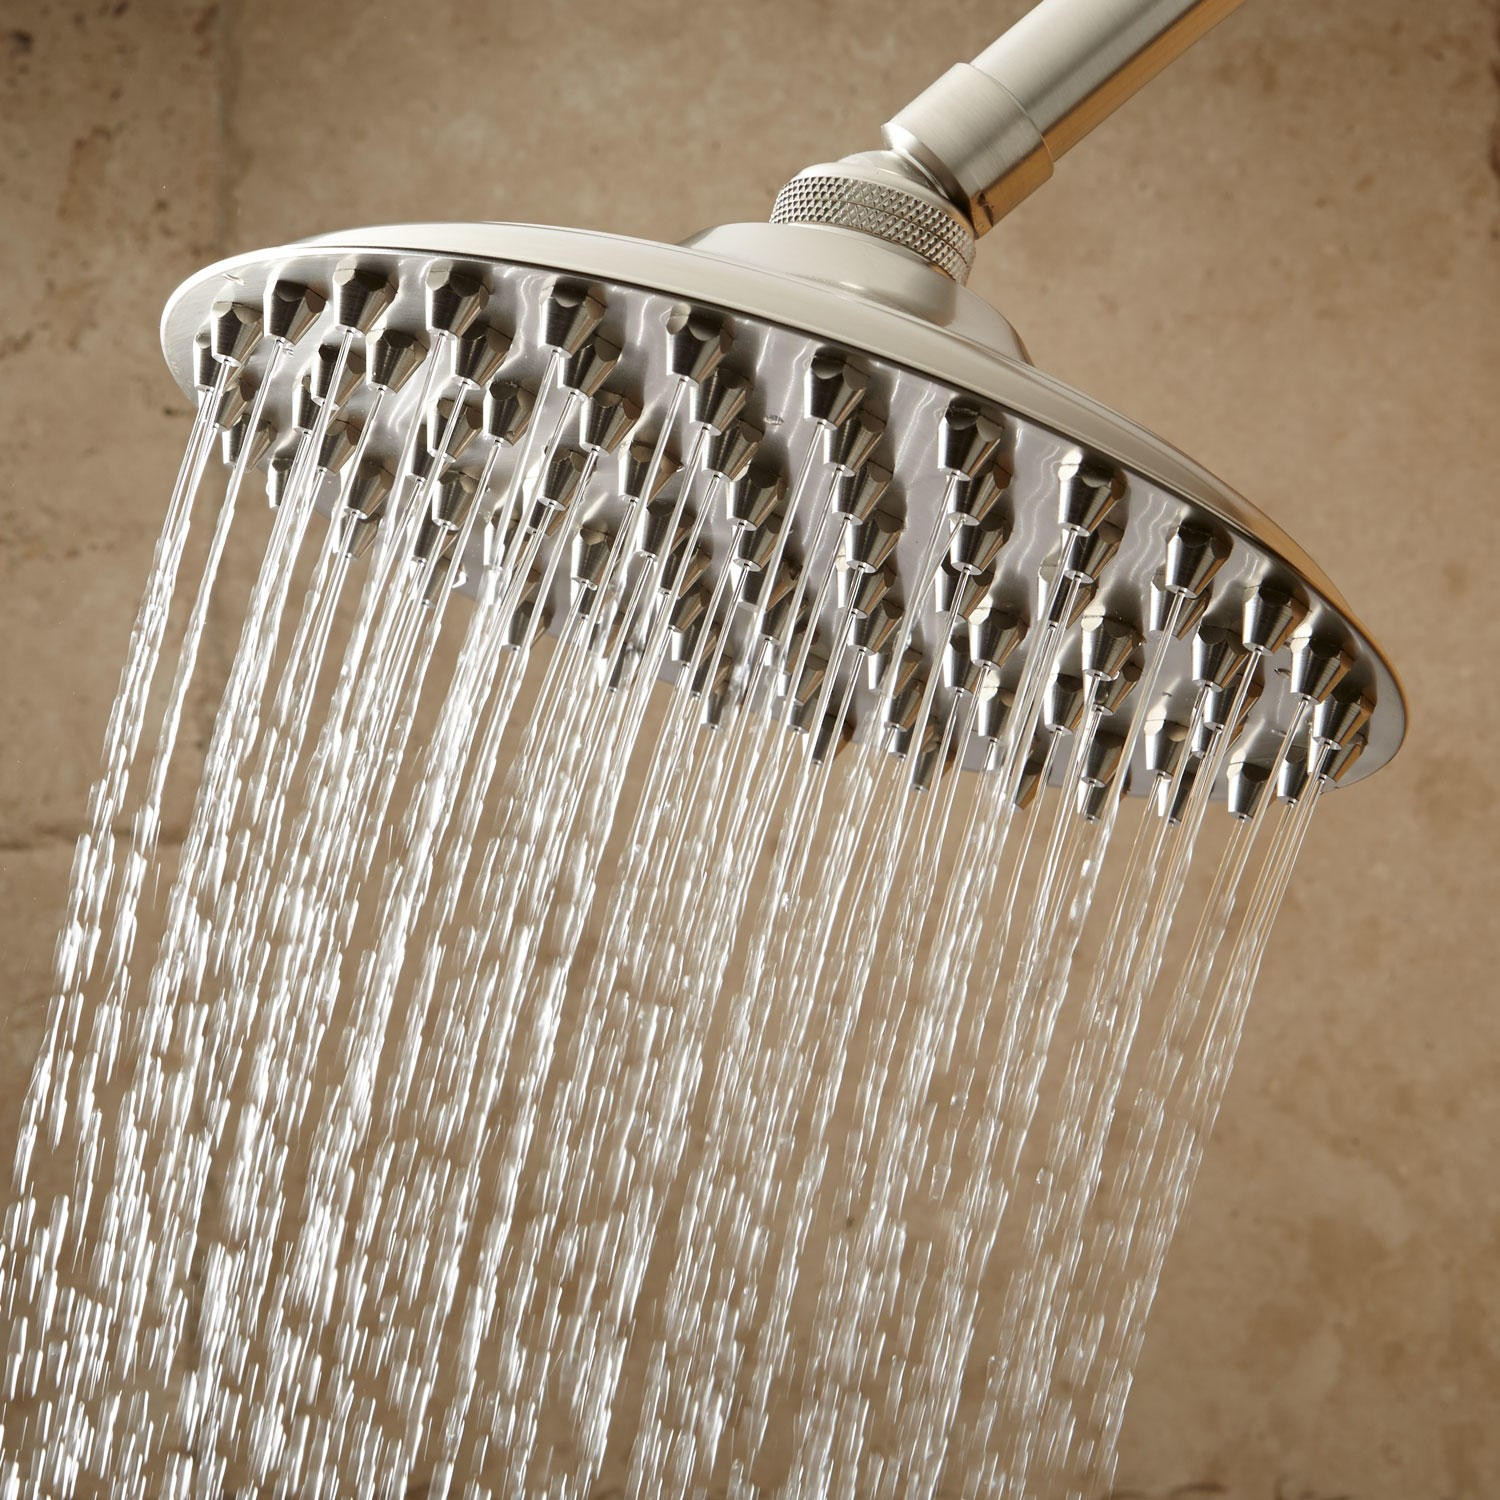 Free photo: Shower Head - Tube, Tiles, Wash - Free Download - Jooinn